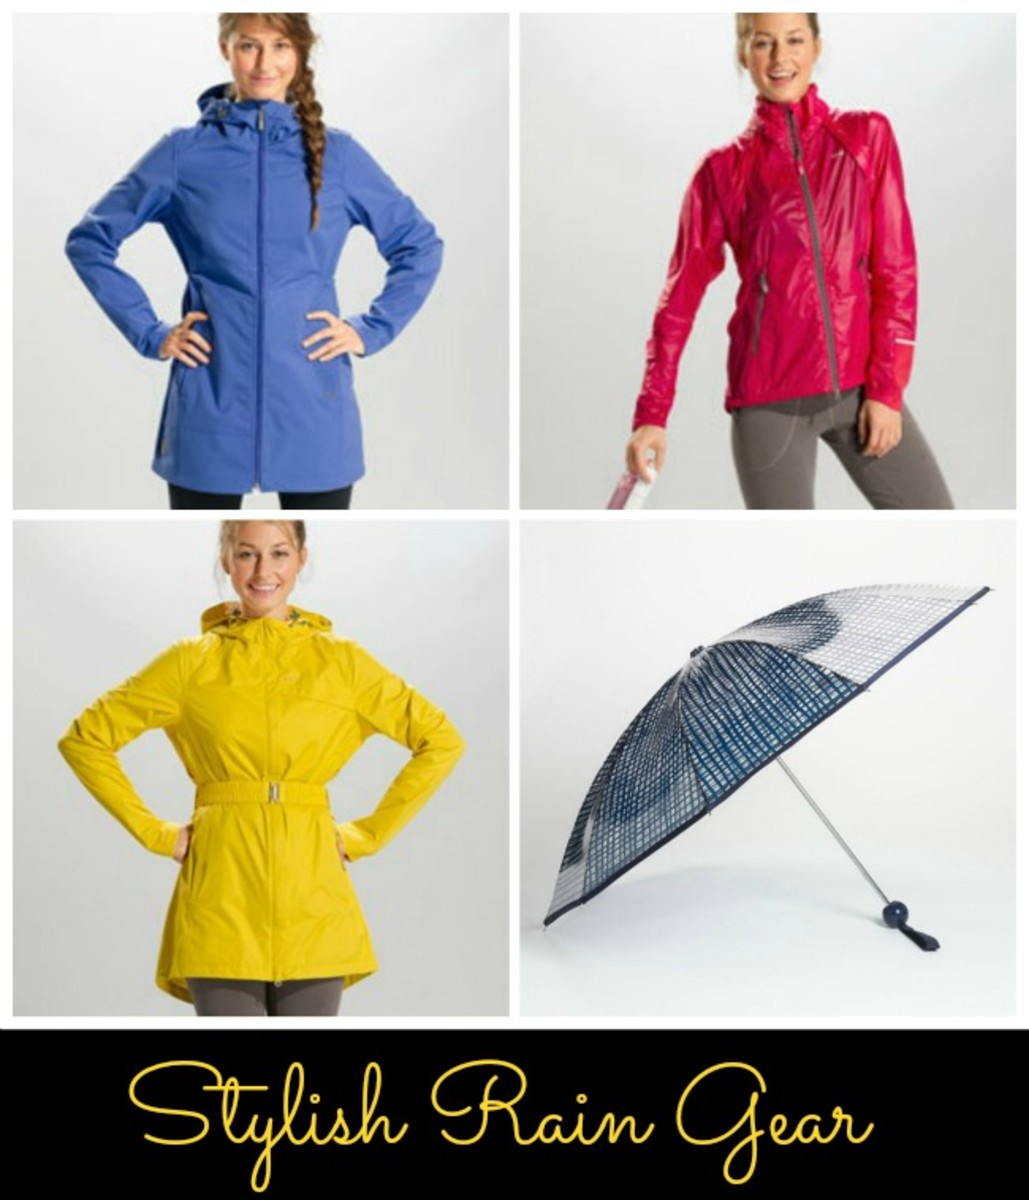 rain coats, rain jackets, umbrellas, stylish rain gear, april showers, bright jackets, printed umbrellas, lole, k-way, marc jacobs